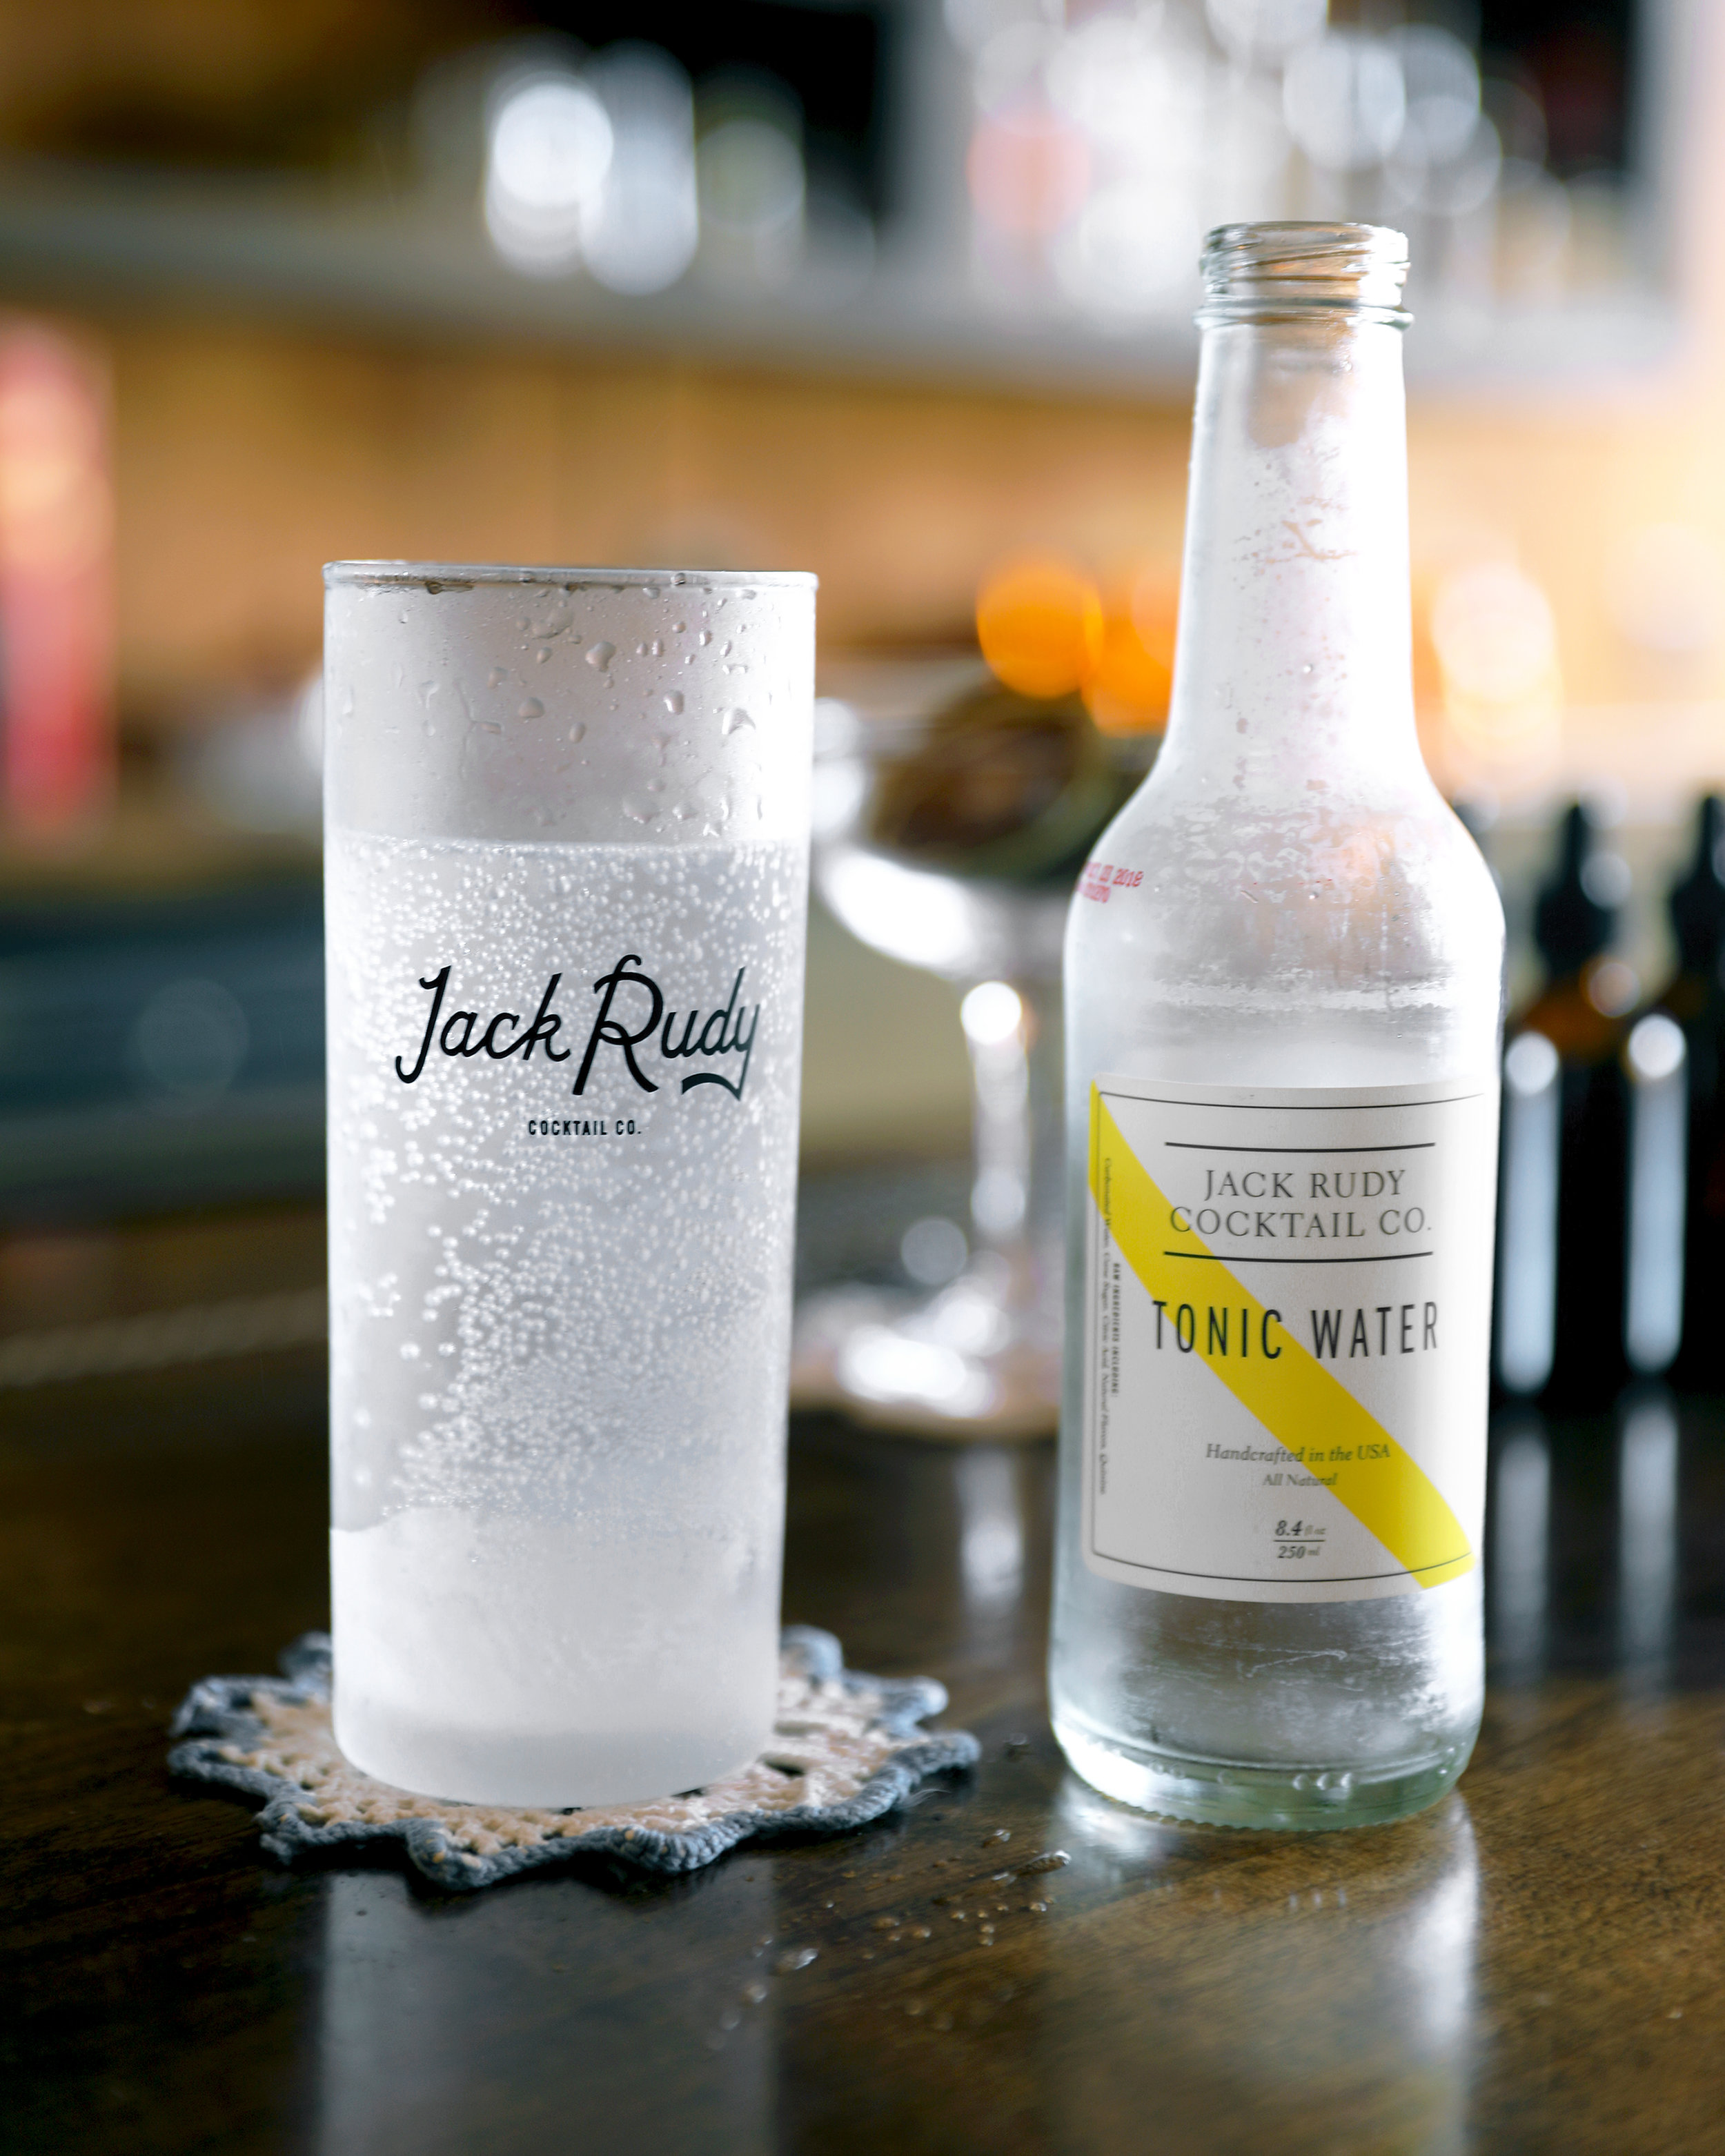 Jack Rudy Cocktail Co.